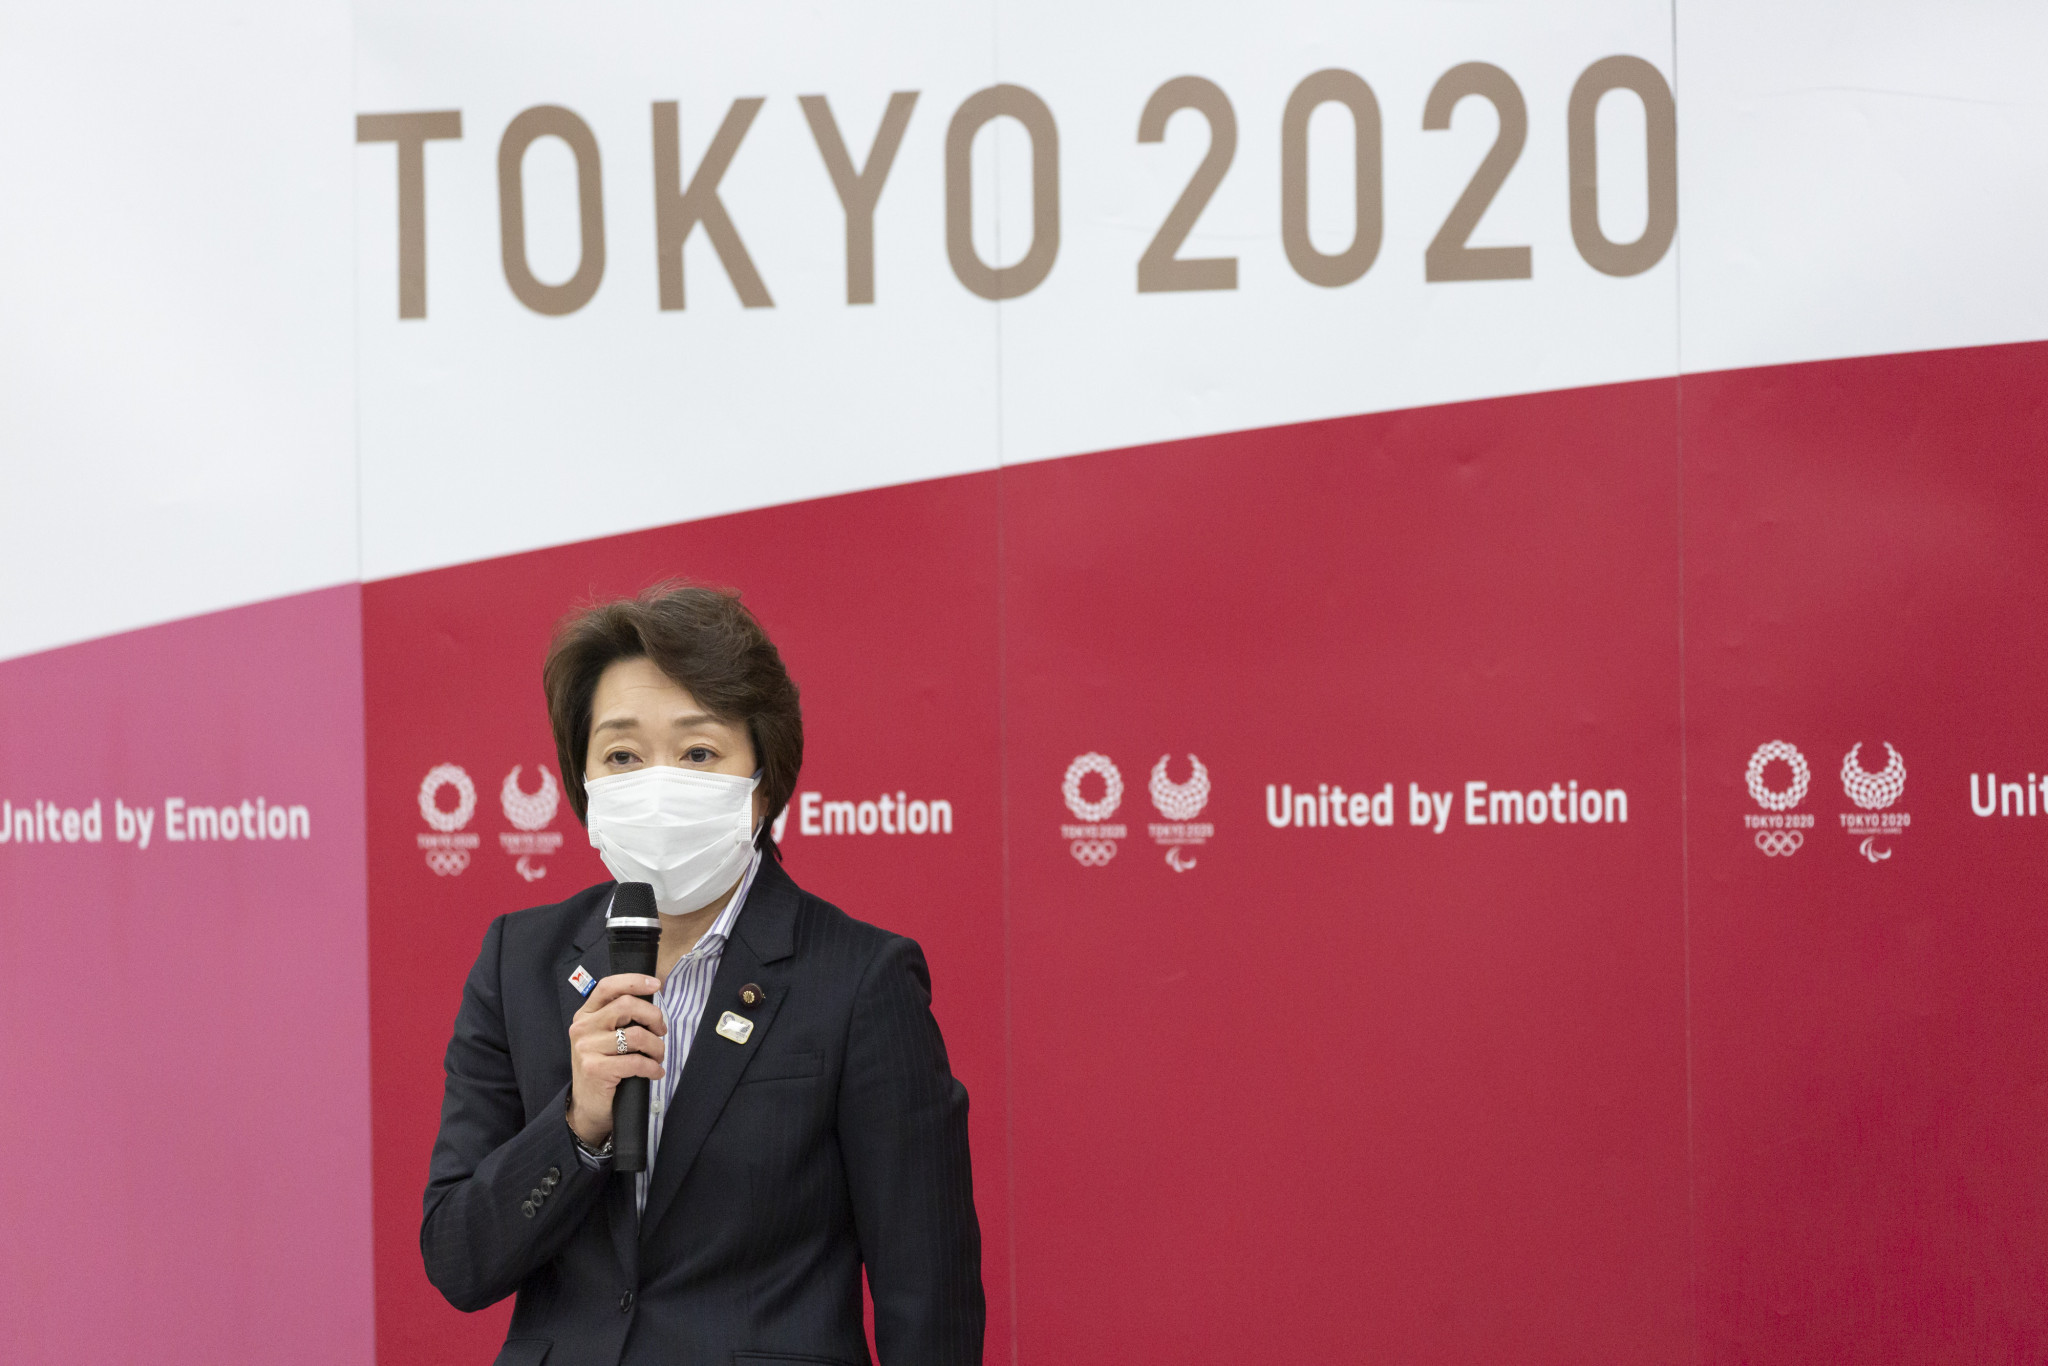 Seiko Hashimoto was appointed the new Tokyo 2020 President last month ©Getty Images